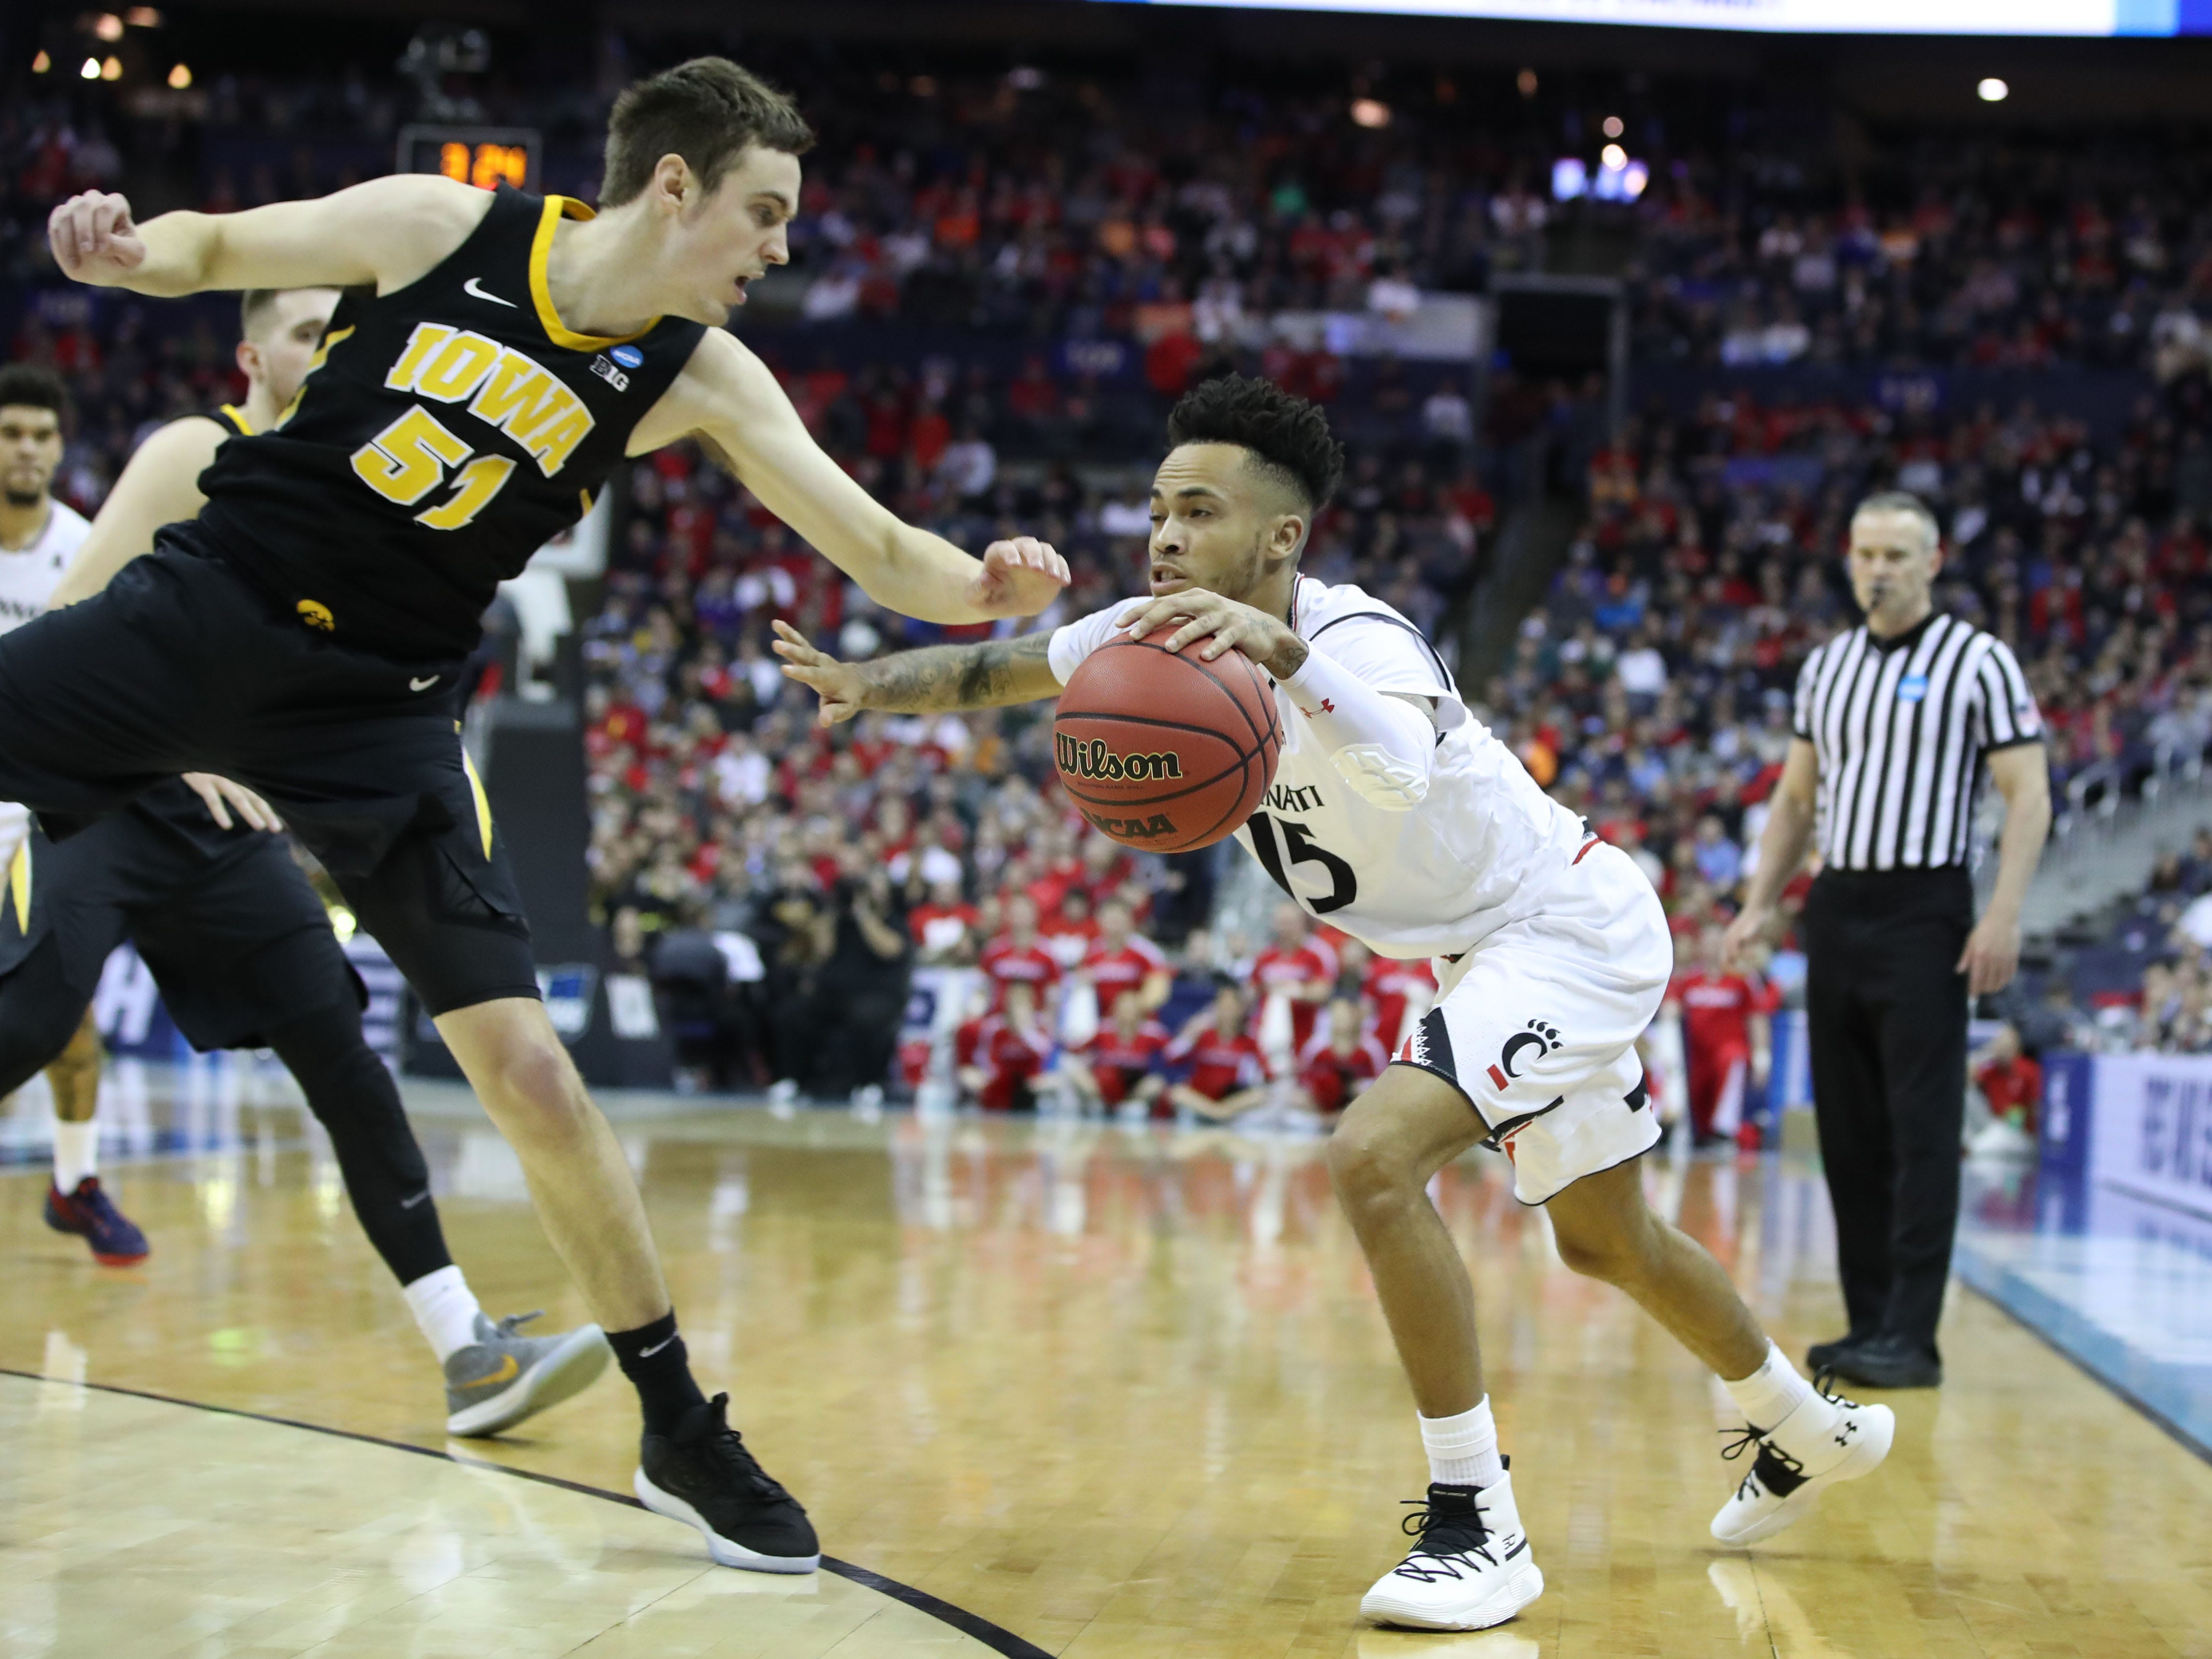 Cincinnati Bearcats guard Cane Broome (15) drives down to the basket defended by Iowa Hawkeyes forward Nicholas Baer (51) in the first half in the first round of the 2019 NCAA Tournament at Nationwide Arena on March 22, 2019.